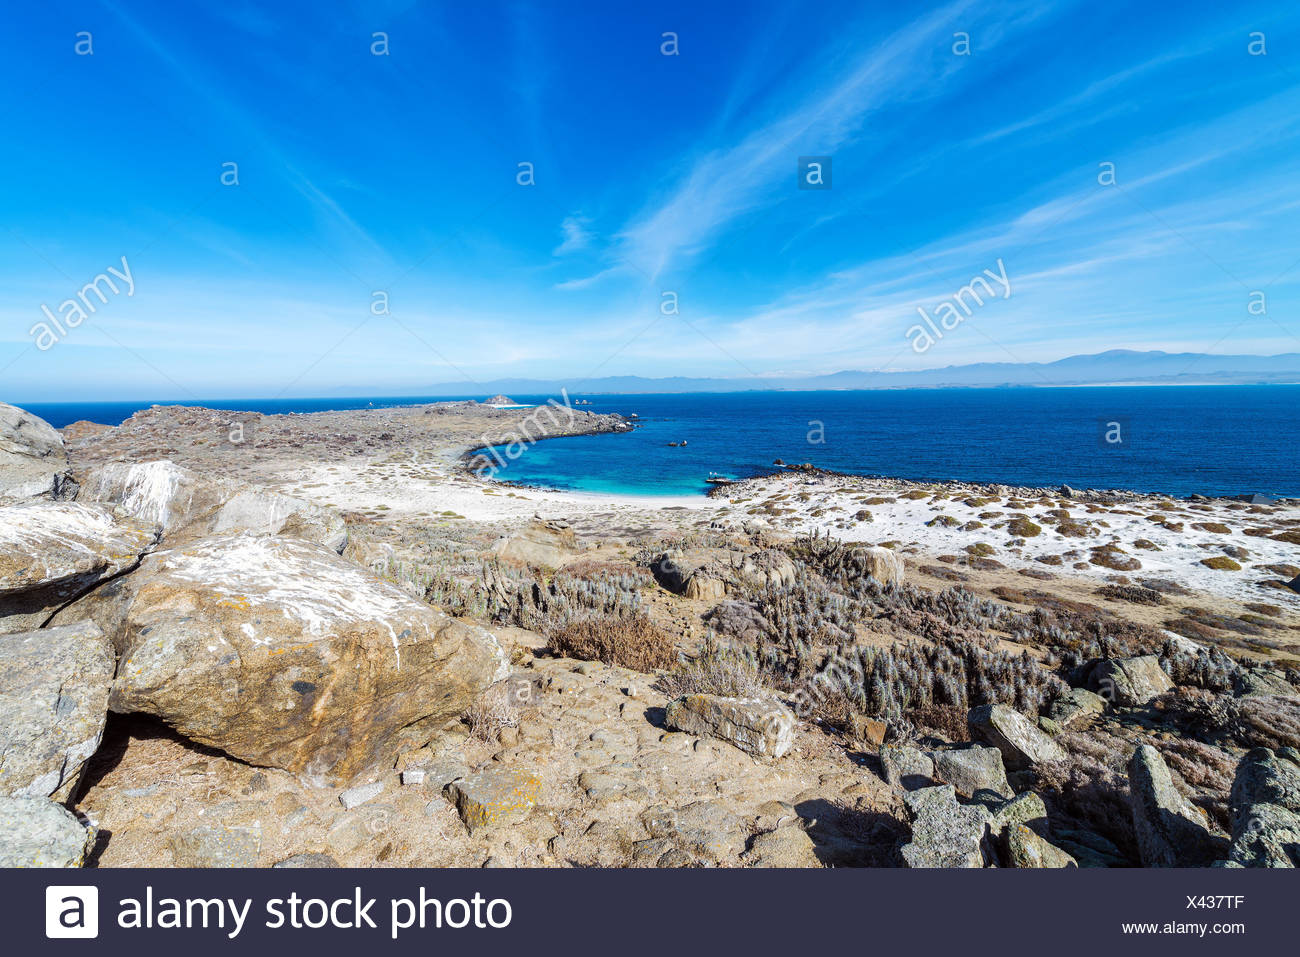 Desert landscape and beach on Damas Island in Chile Stock Photo